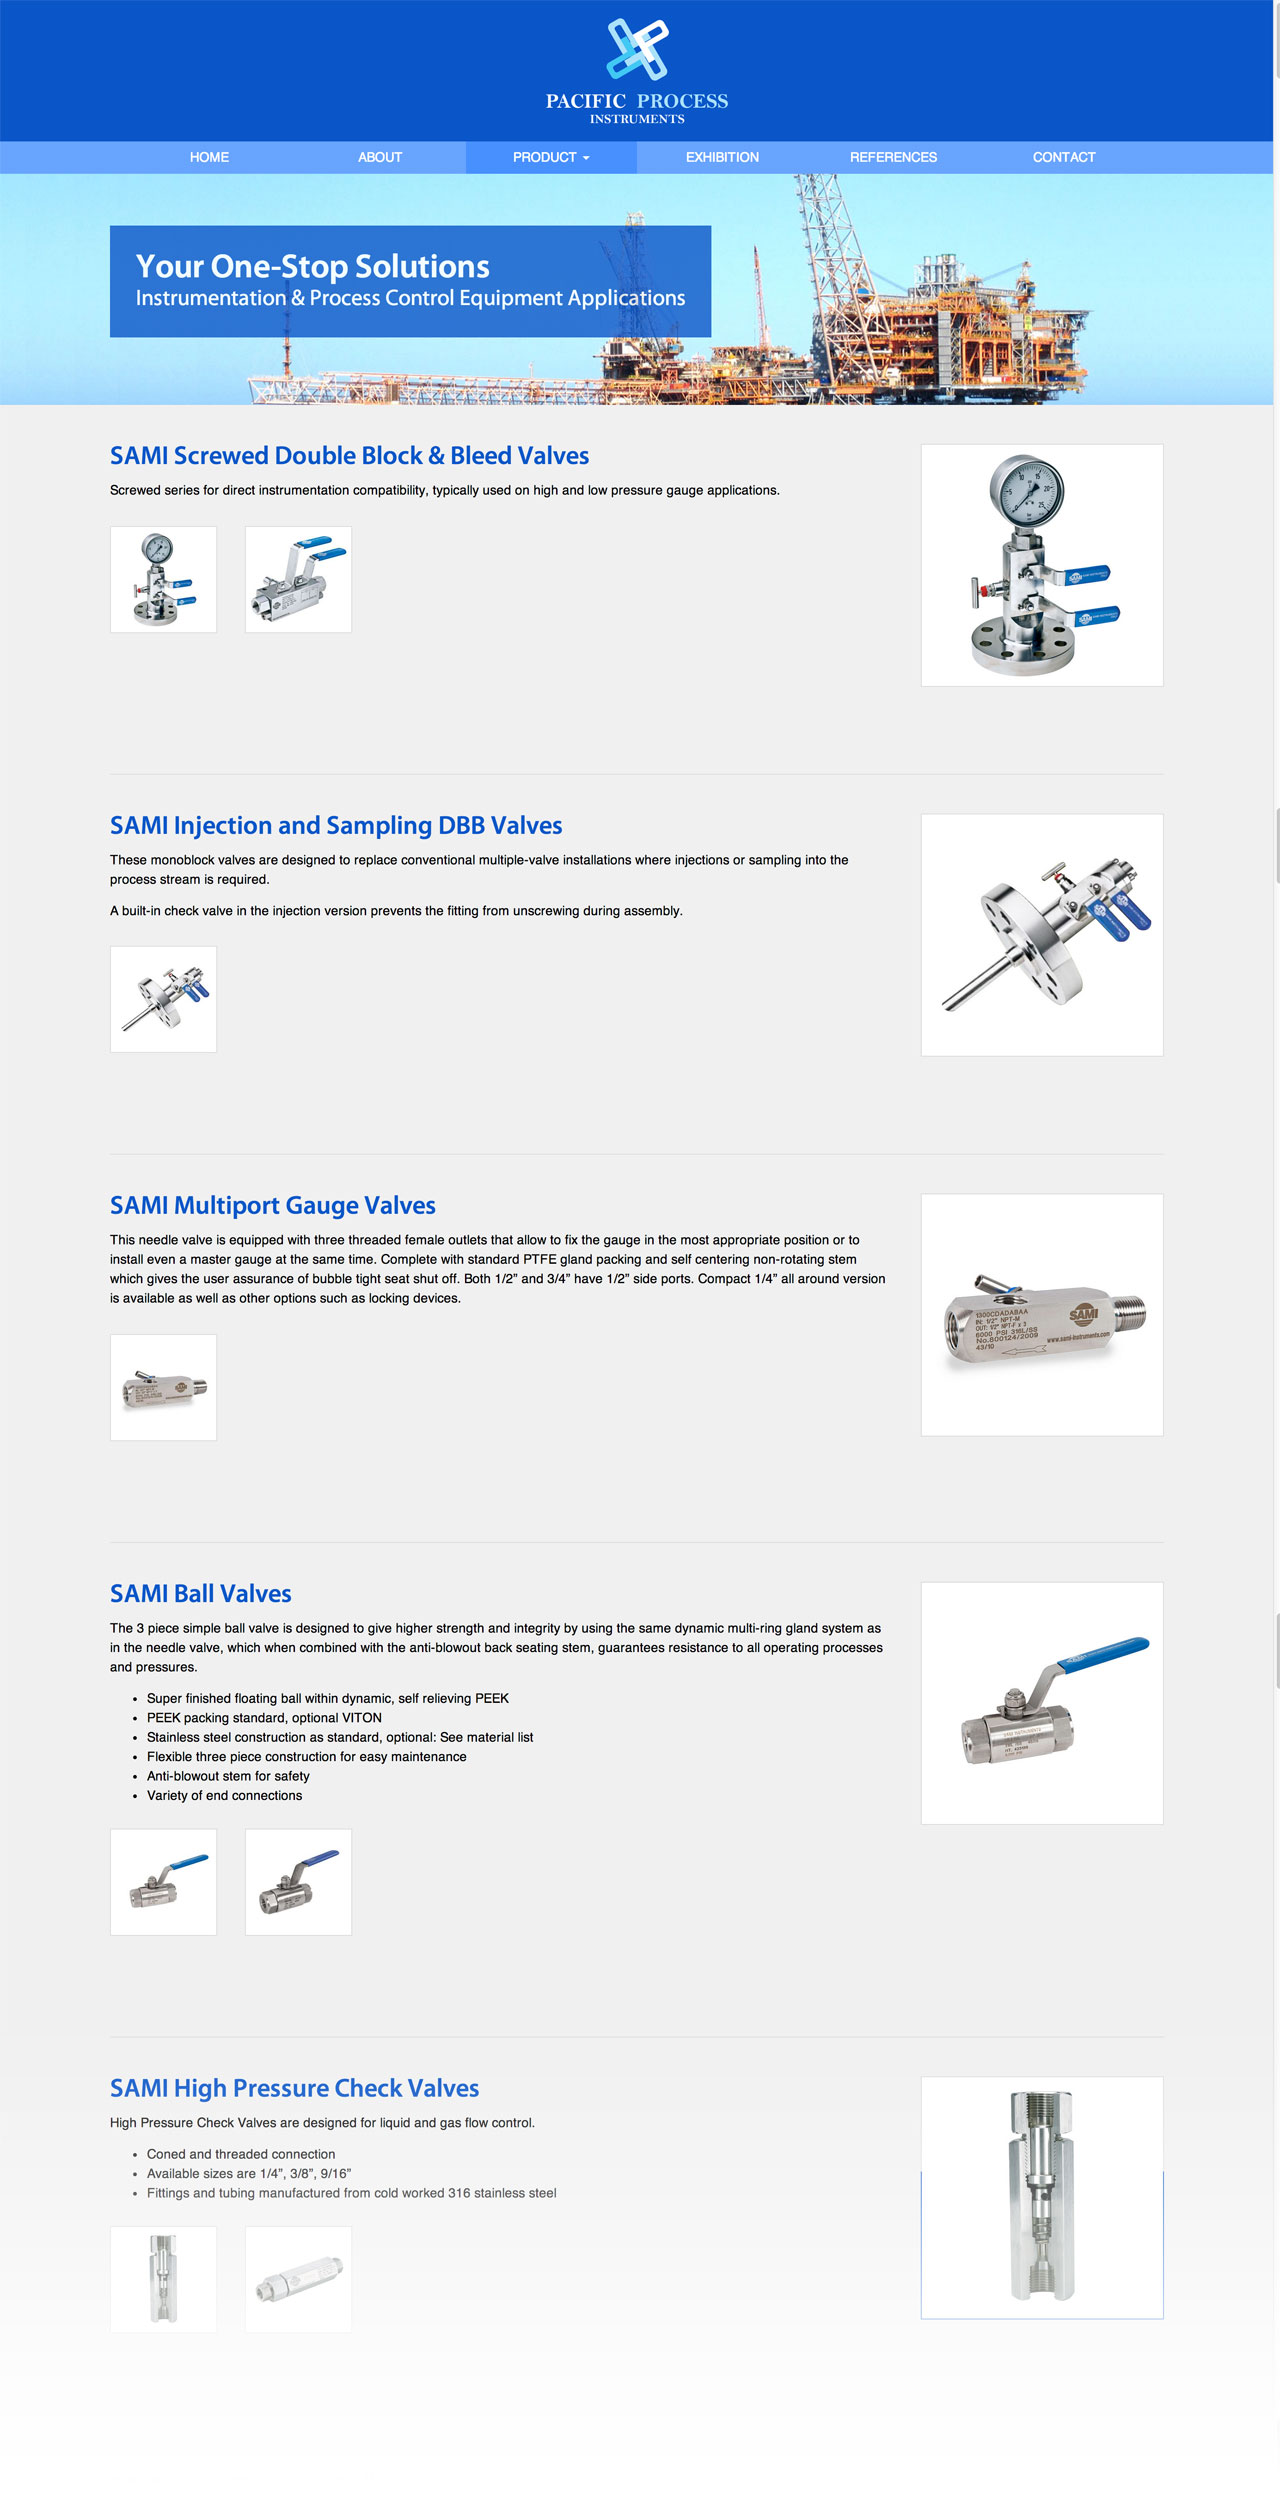 Pacific Process Instruments Pte. Ltd. website products page